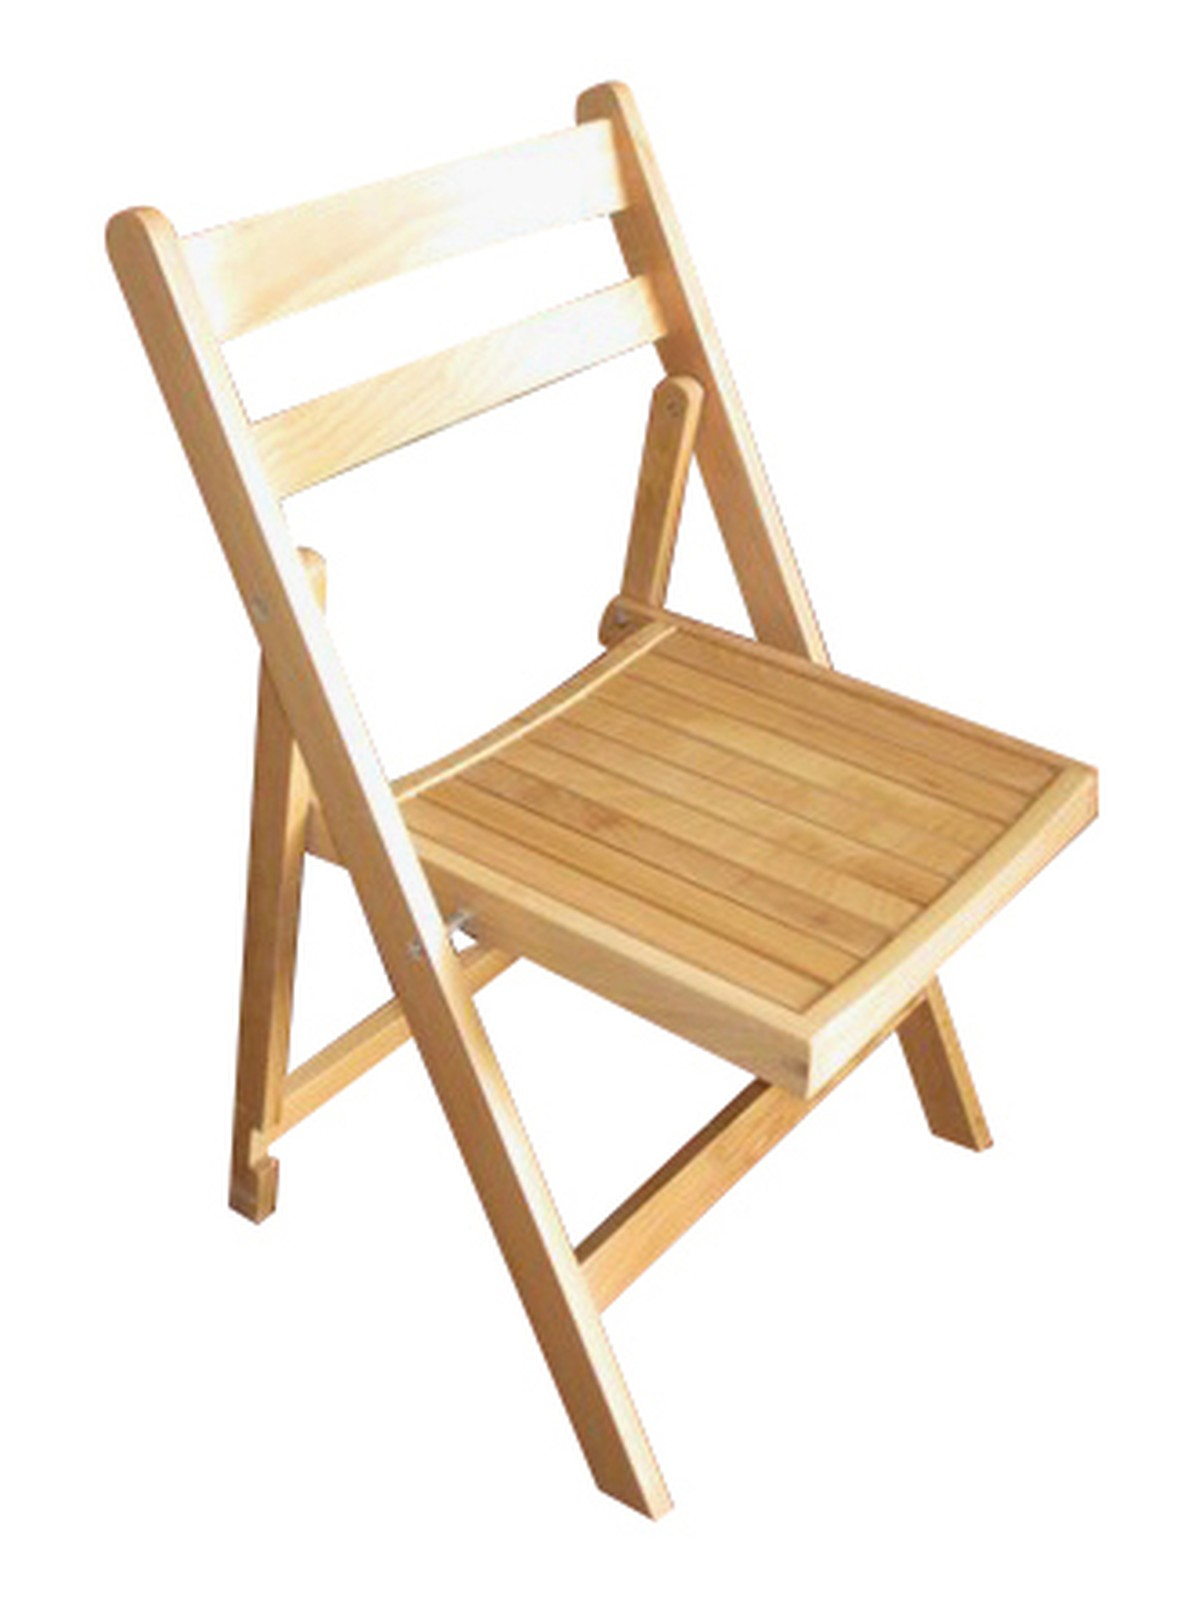 secondhand chairs and tables folding chairs 200x top quality